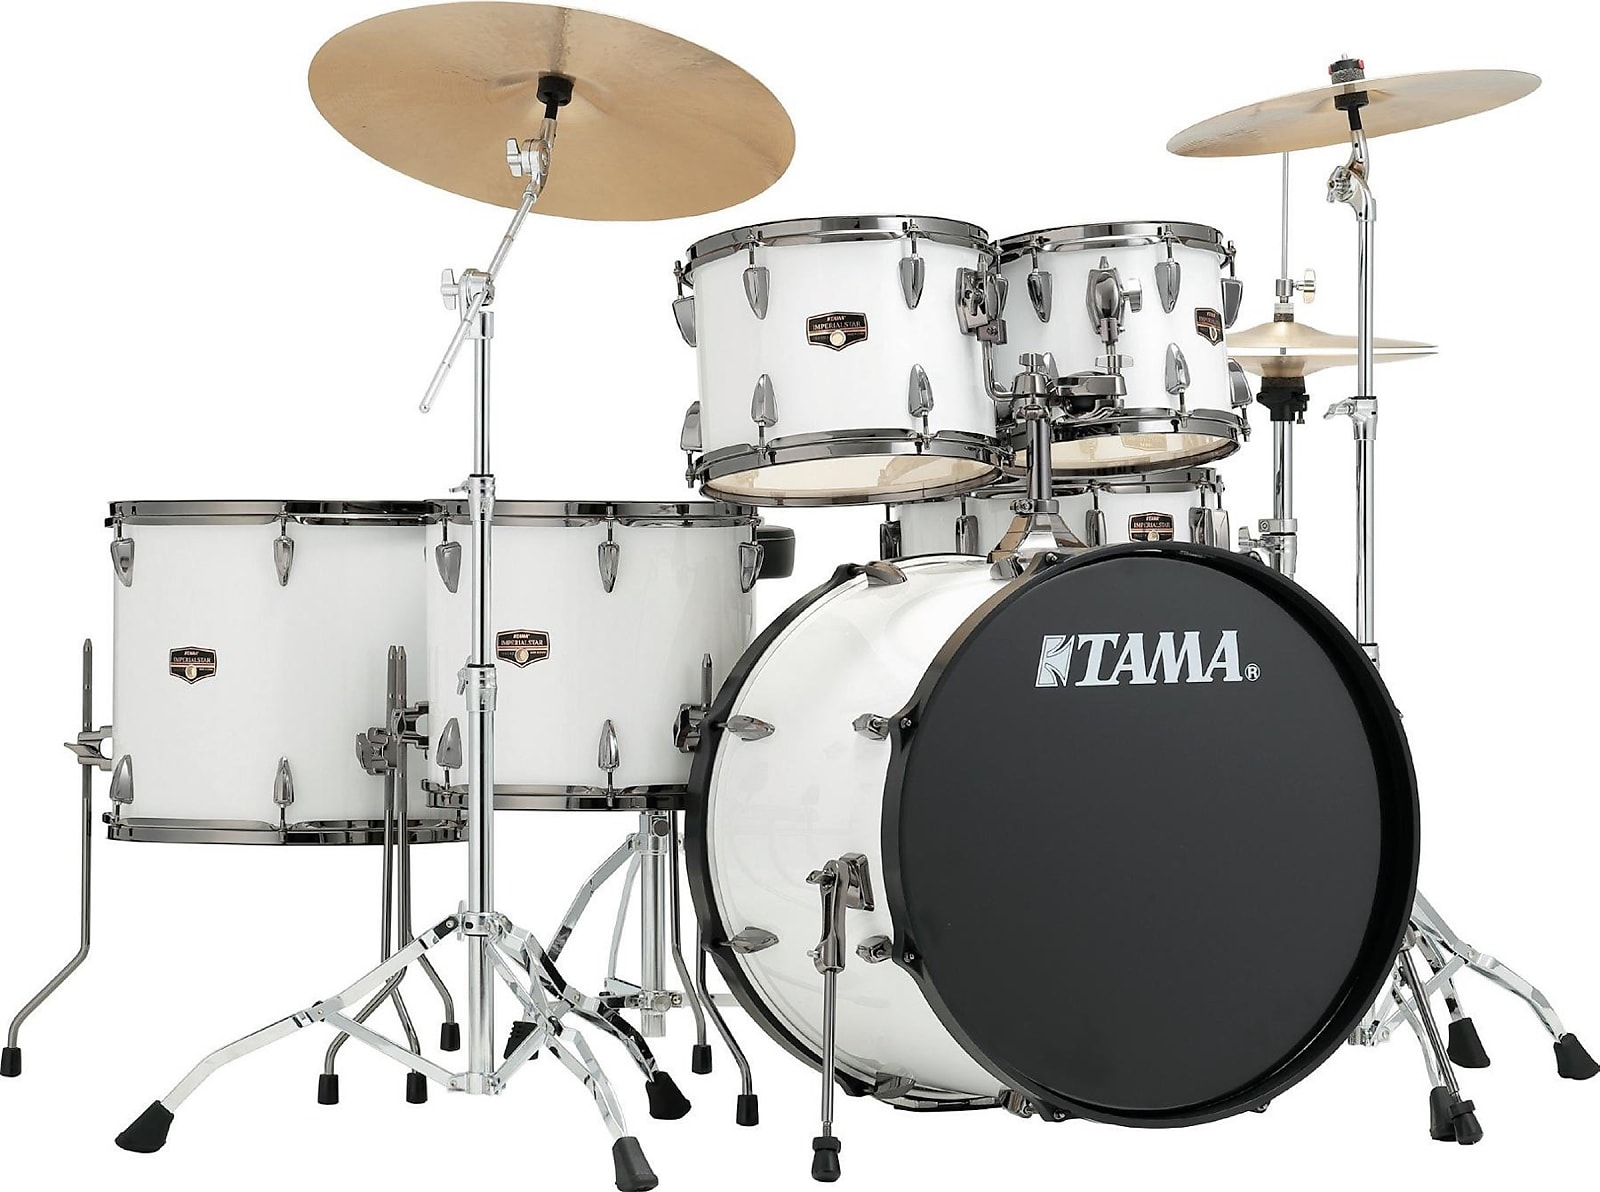 Tama Imperialstar 6 Piece Drum Set With Cymbals Sugar White W Black